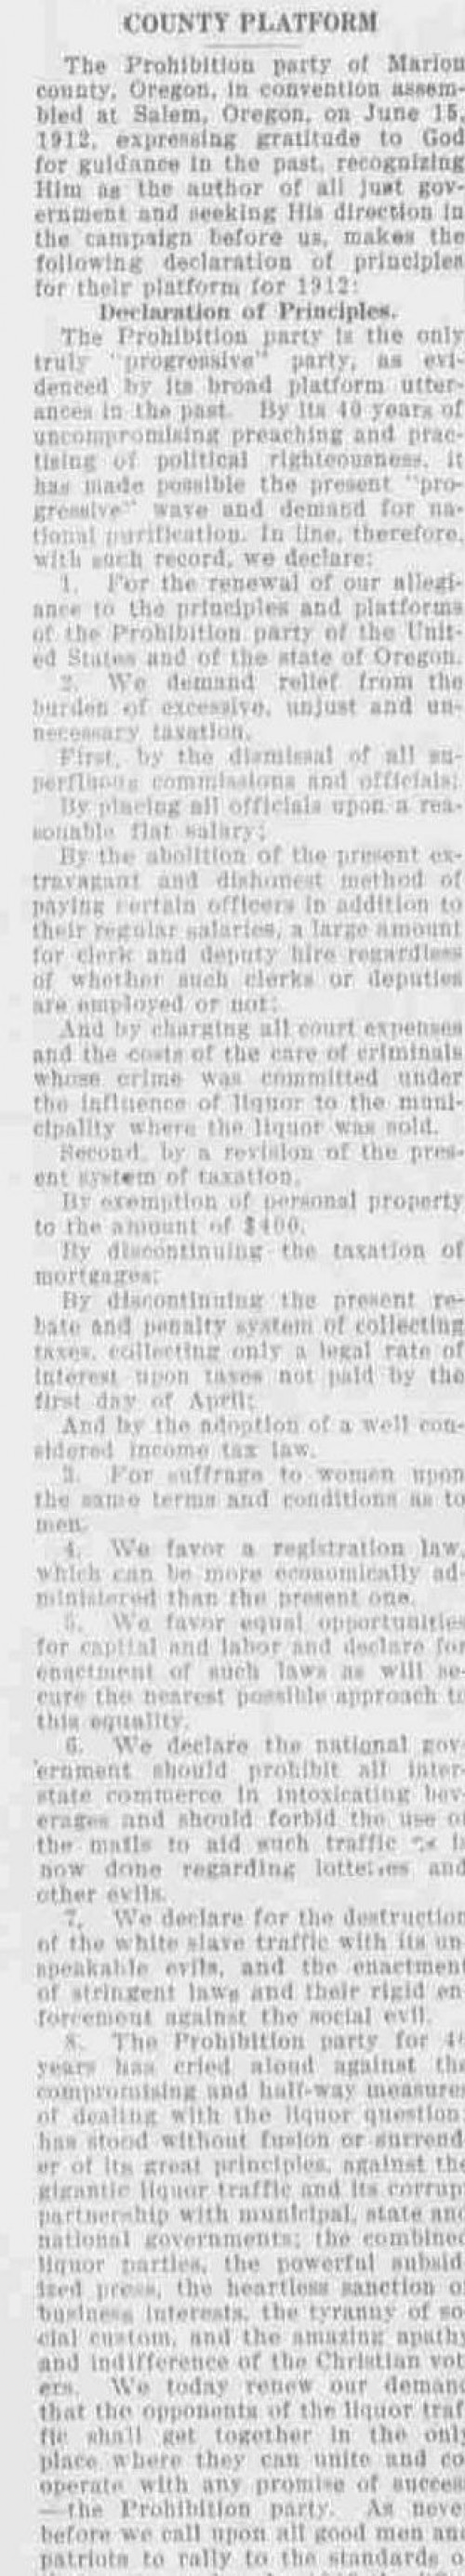 http://centuryofaction.org/images/uploads/Prohibition_Party_Declaration_of_Principles_Salem_Daily_Capital_Journal_November_2_1912_Page_6_thumb.jpg